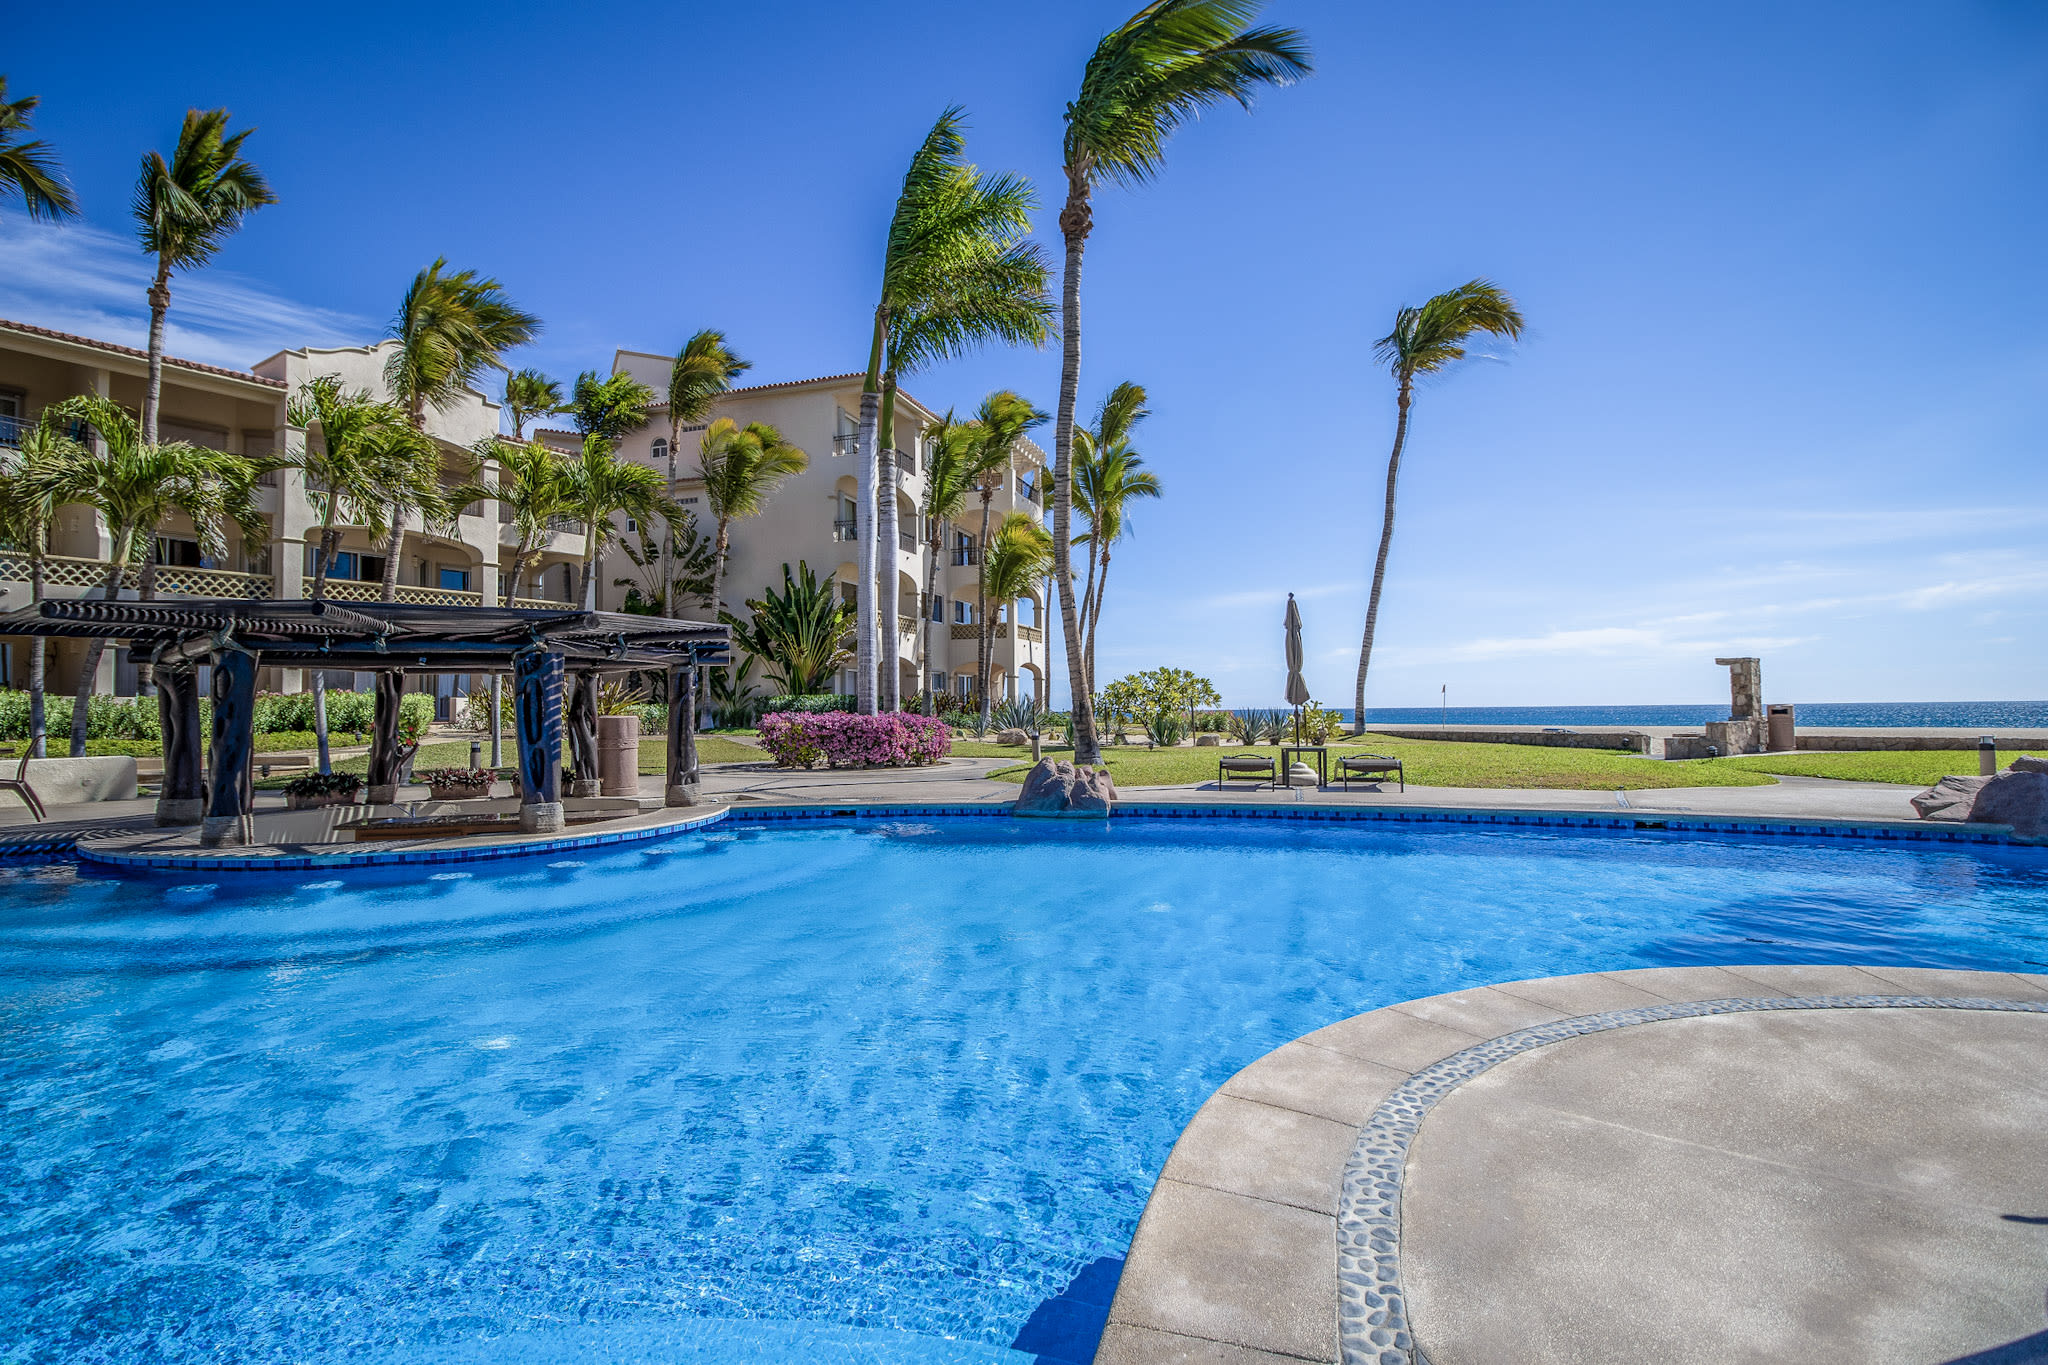 TRUE BEACHFRONT 3BR! POOLSIDE! BEST LOCATION! MINUTES TO DOWNTOWN SAN...